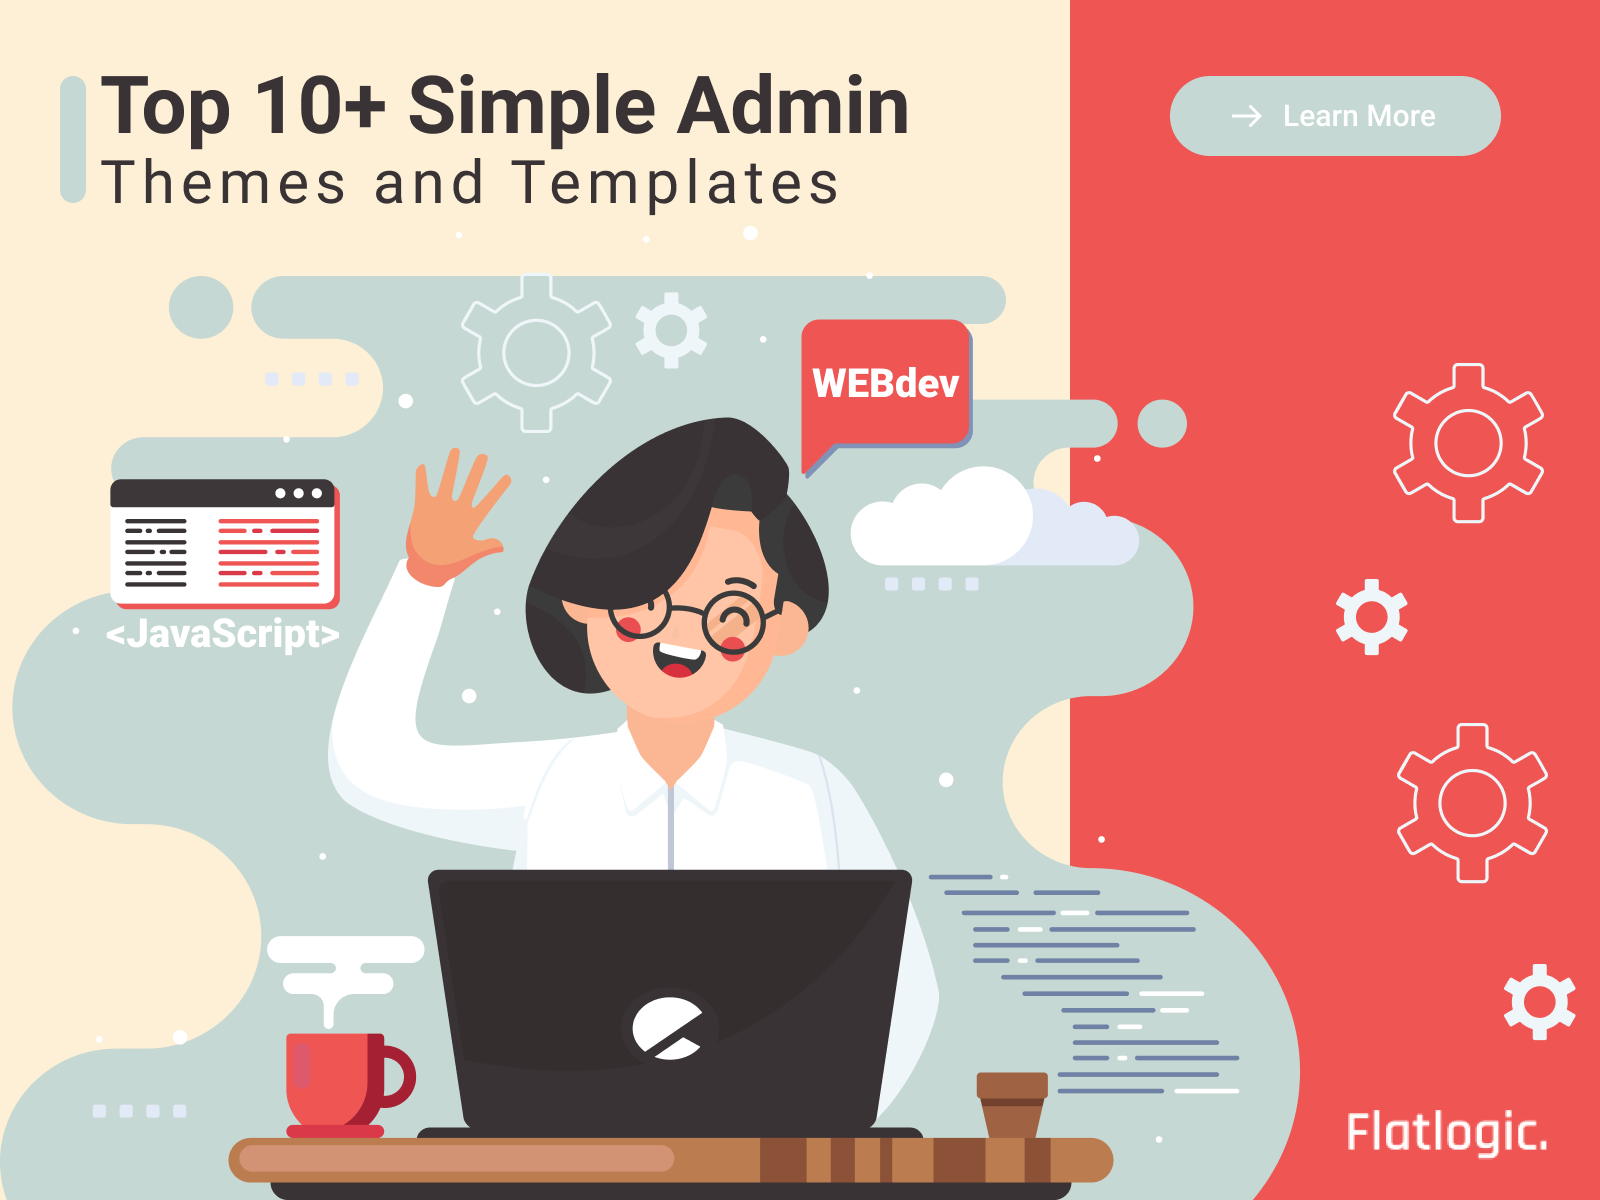 Top 10+ Simple Admin Themes and Templates